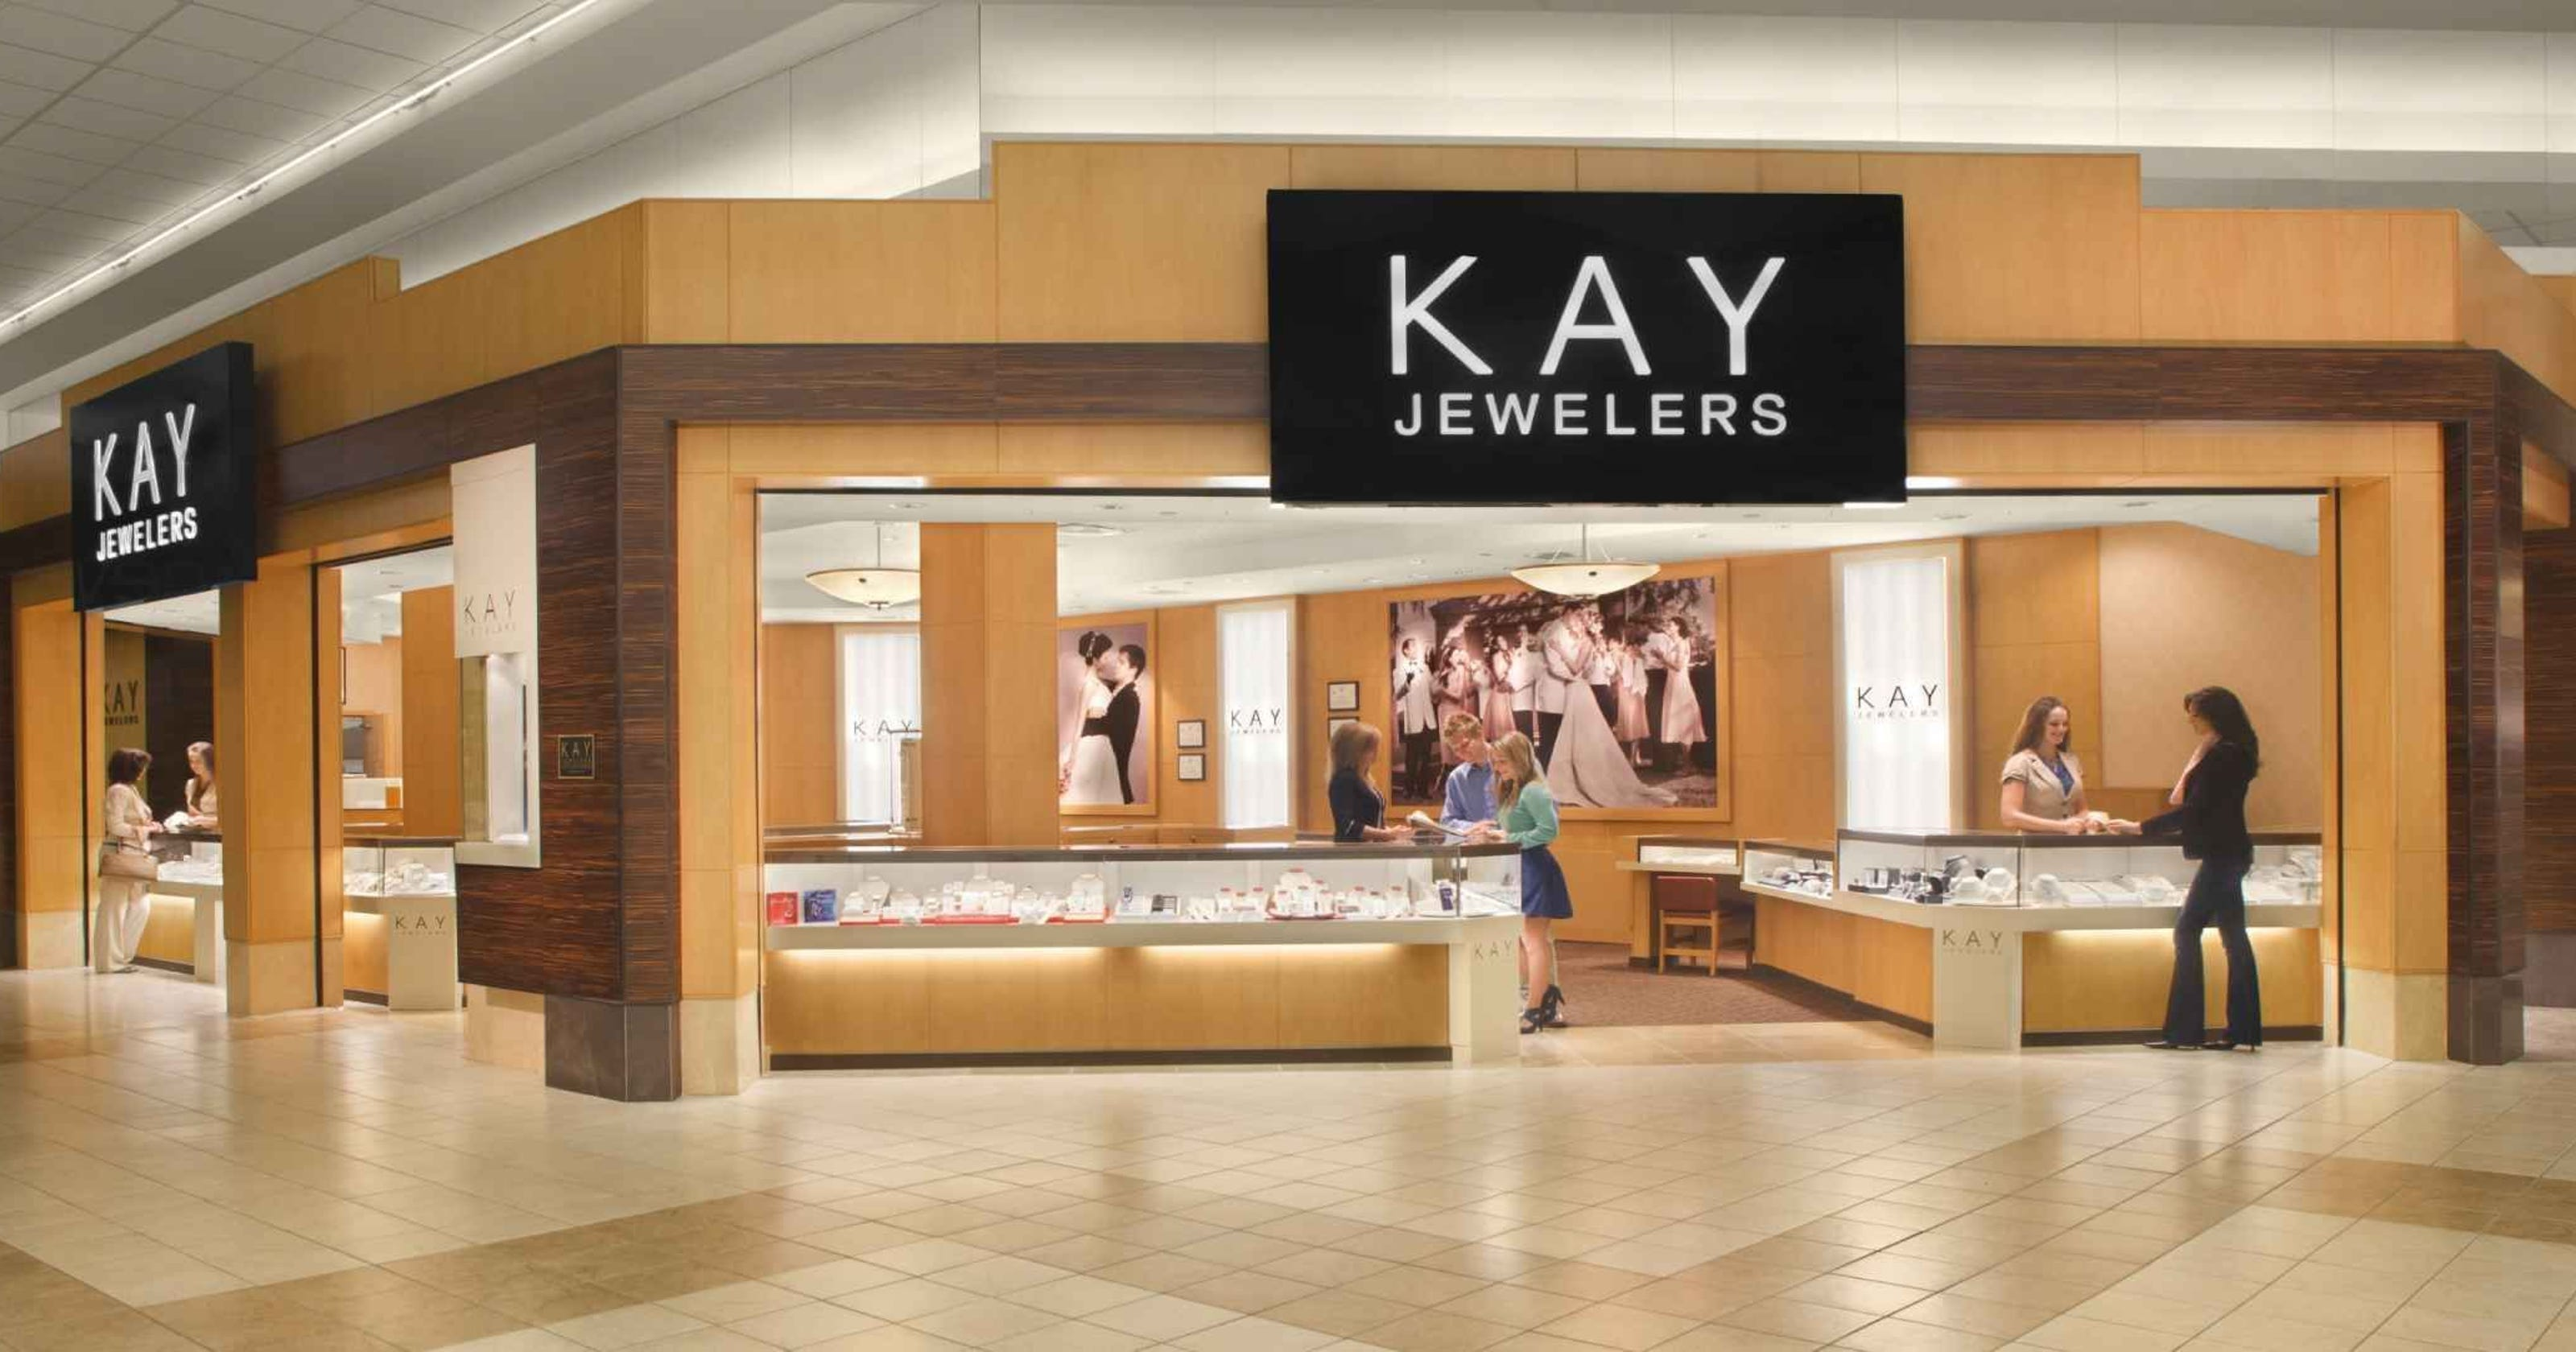 Store closings 2019: Signet Jewelers to close another 150 stores